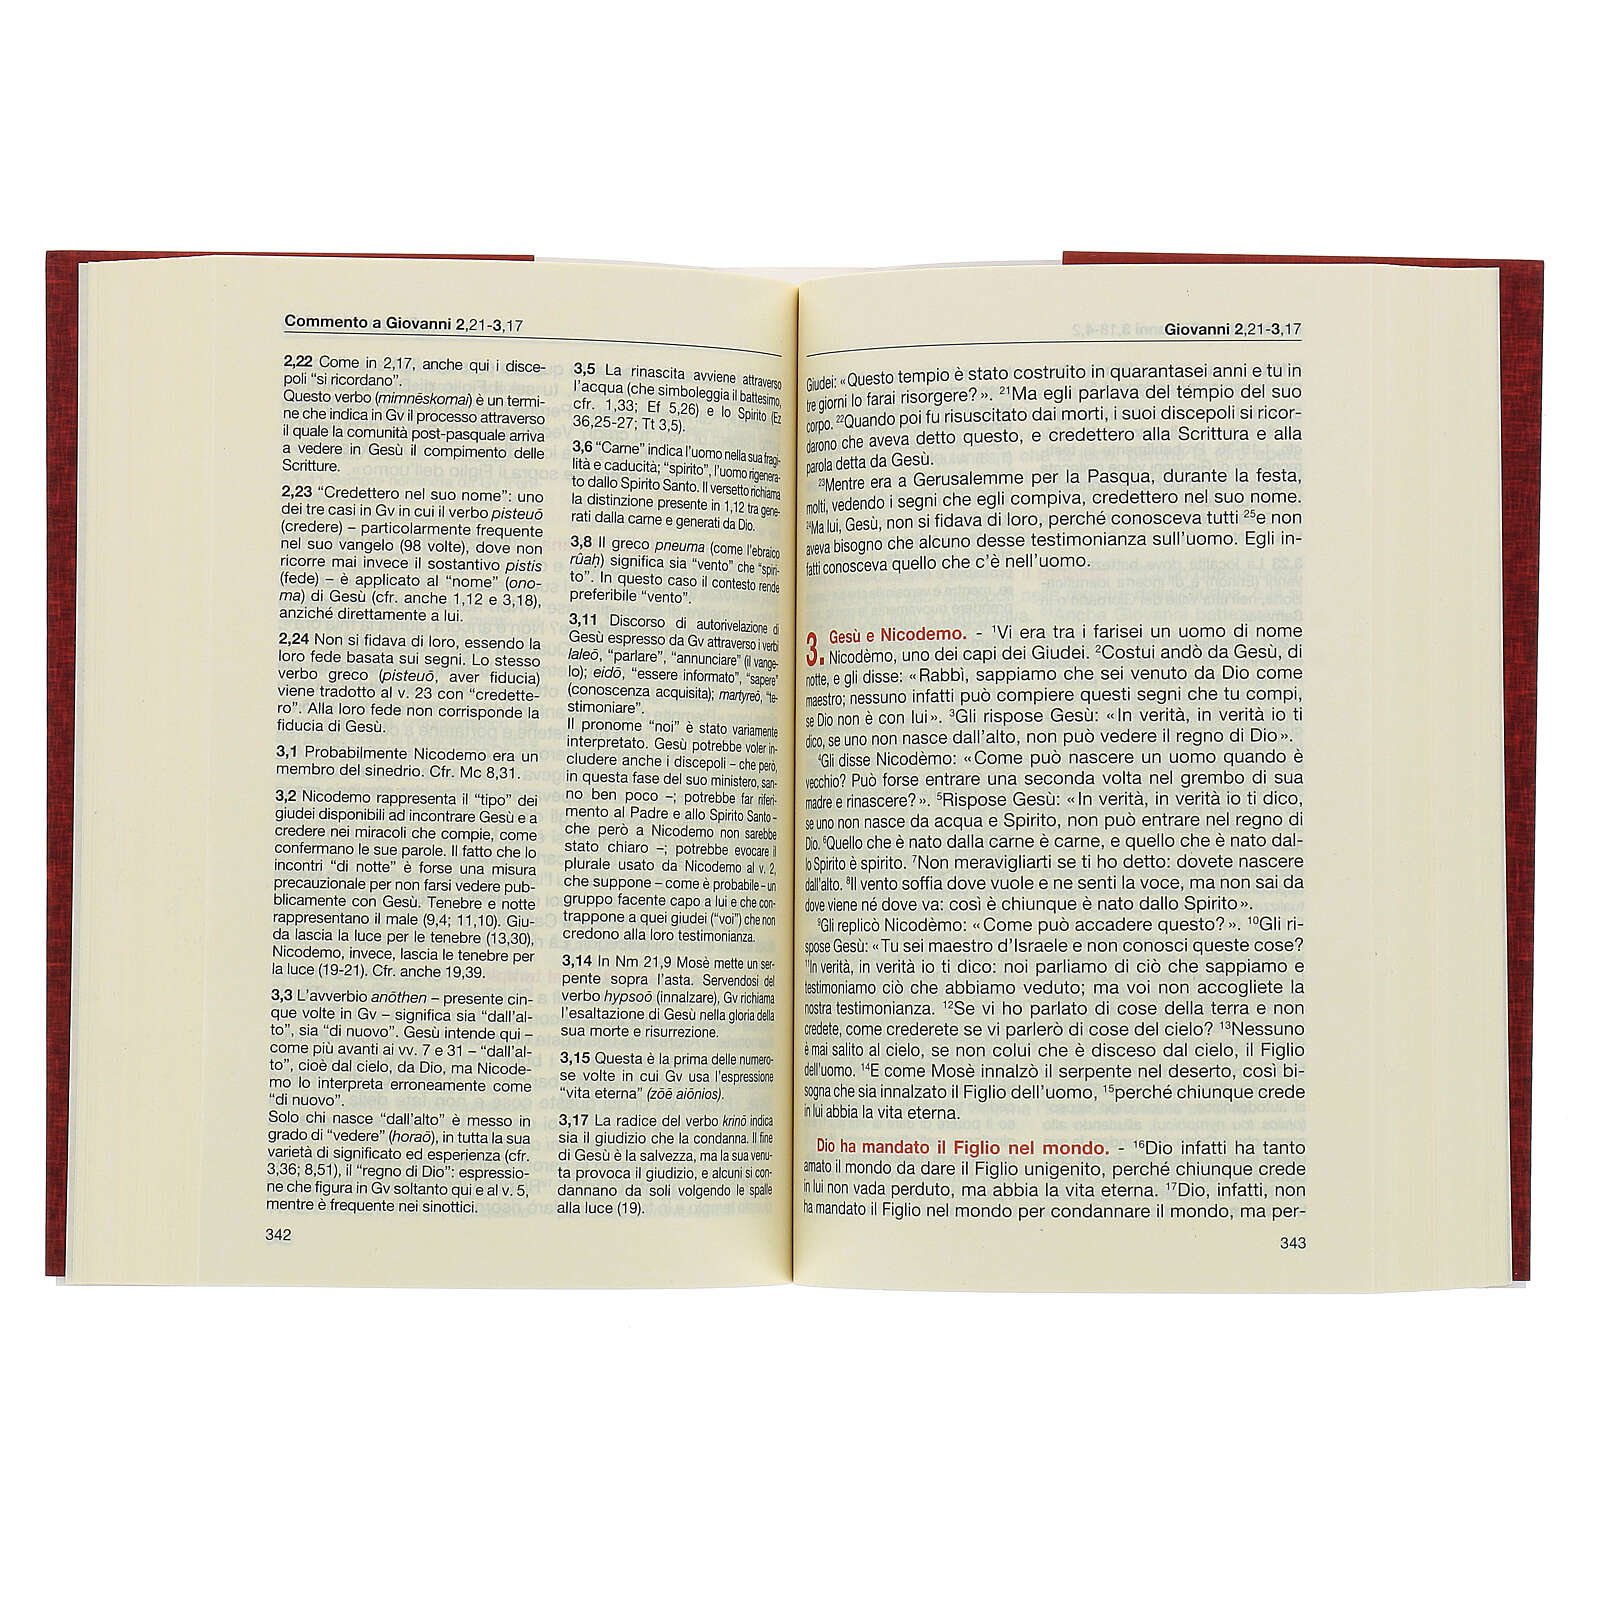 Gospel and Acts of the Apostles New Edition 4